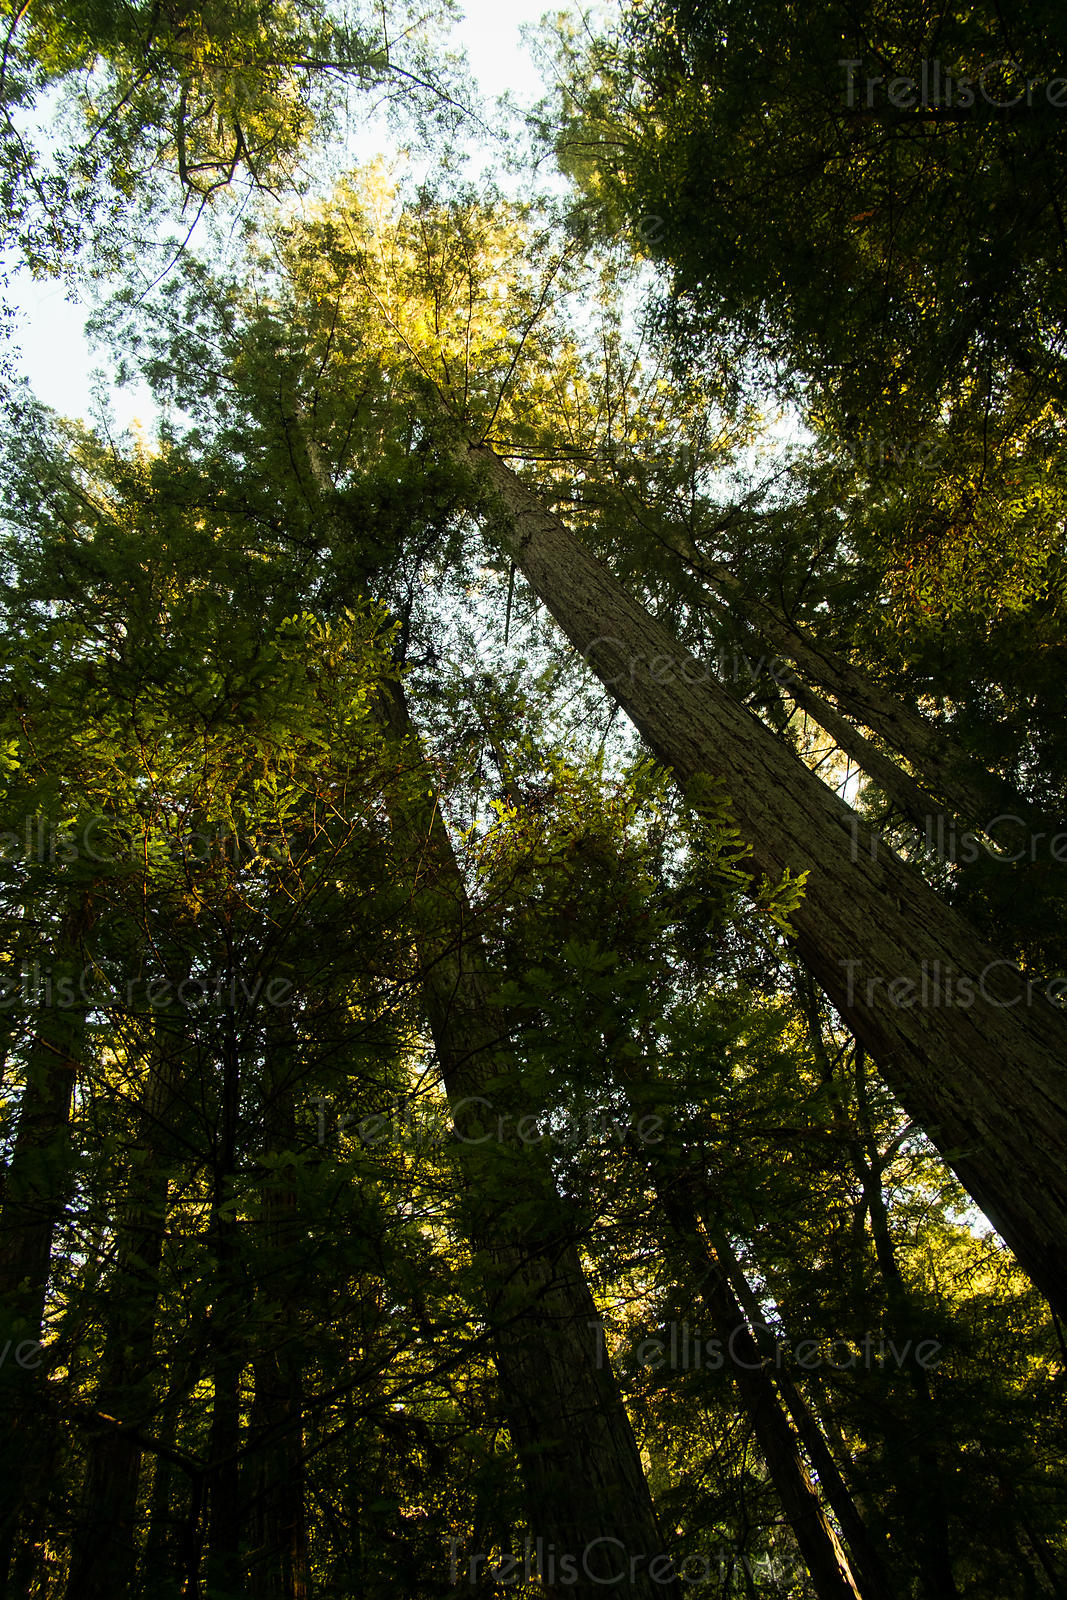 Low angle view of the redwood trees with there canopy